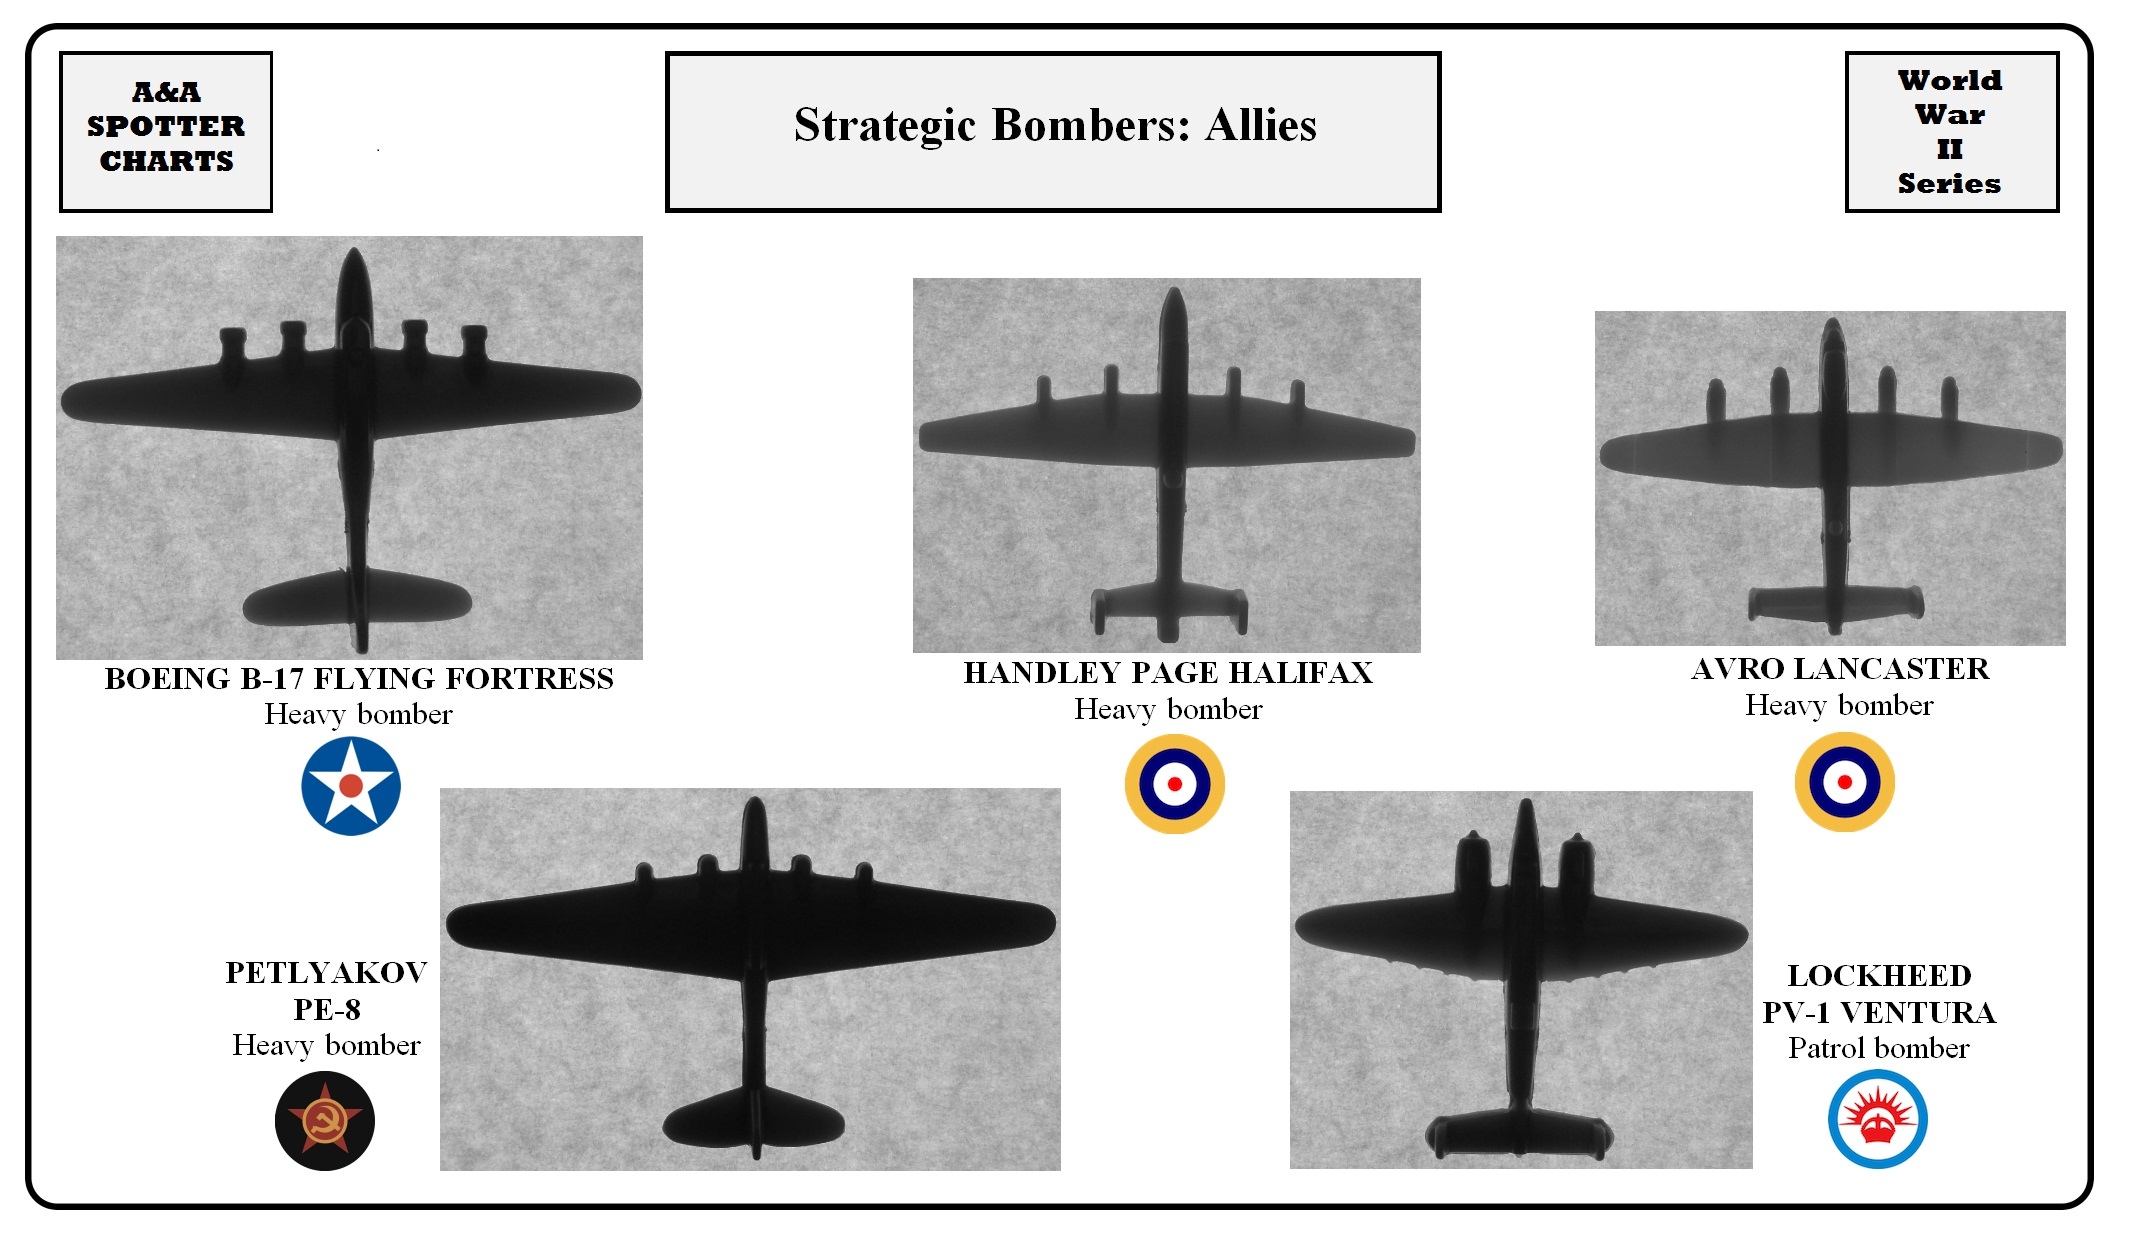 WW2-Air-Strategic Bombers-Allies.jpg